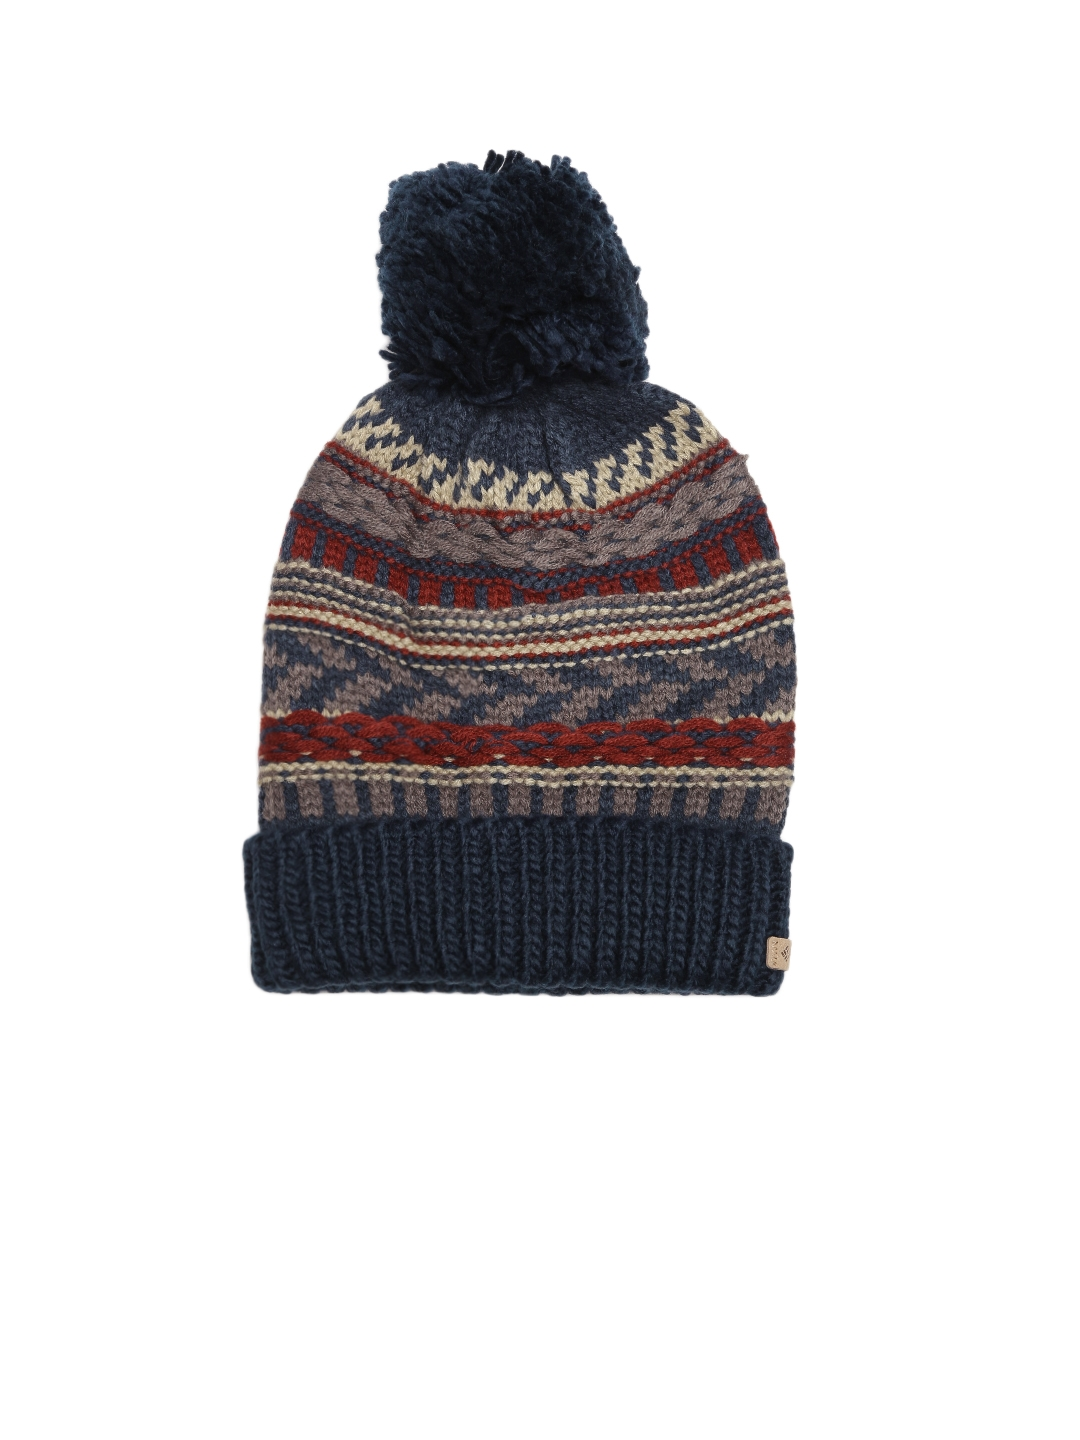 829c87230df5f Buy Columbia Unisex Navy   Beige Stay Frosty Patterned Winter Beanie - Caps  for Unisex 2063368